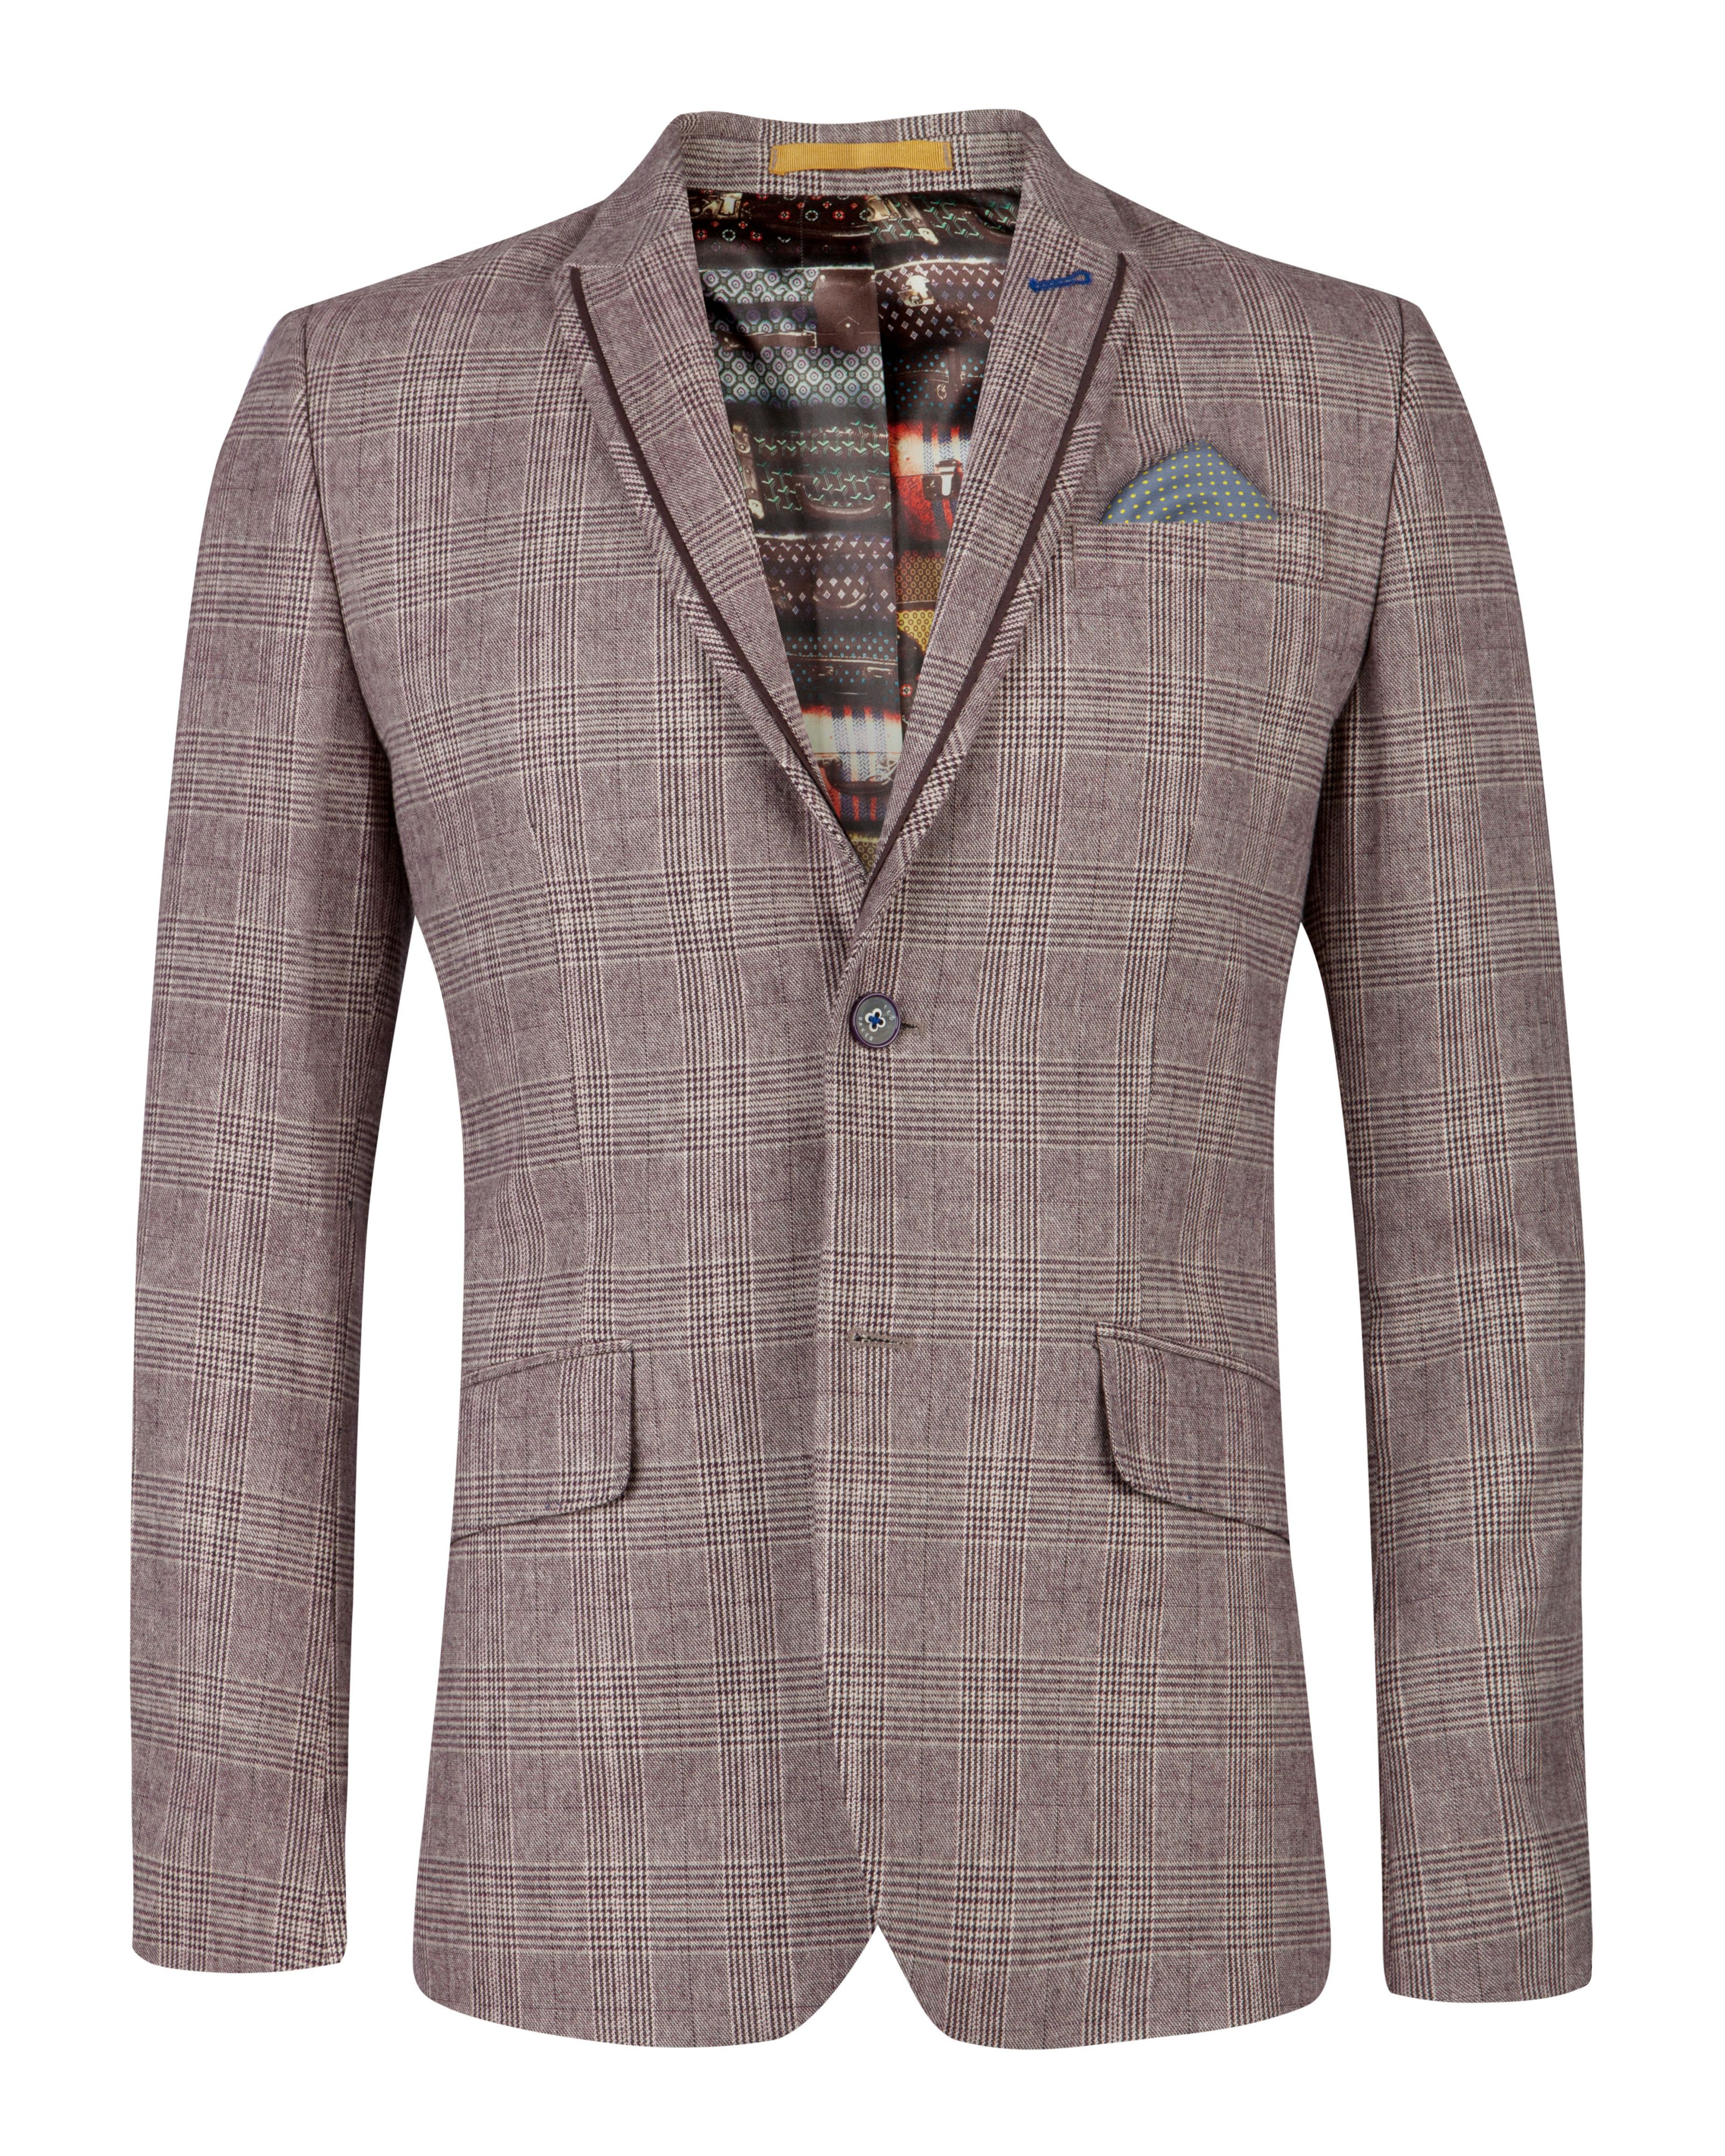 Arwan check cotton blazer